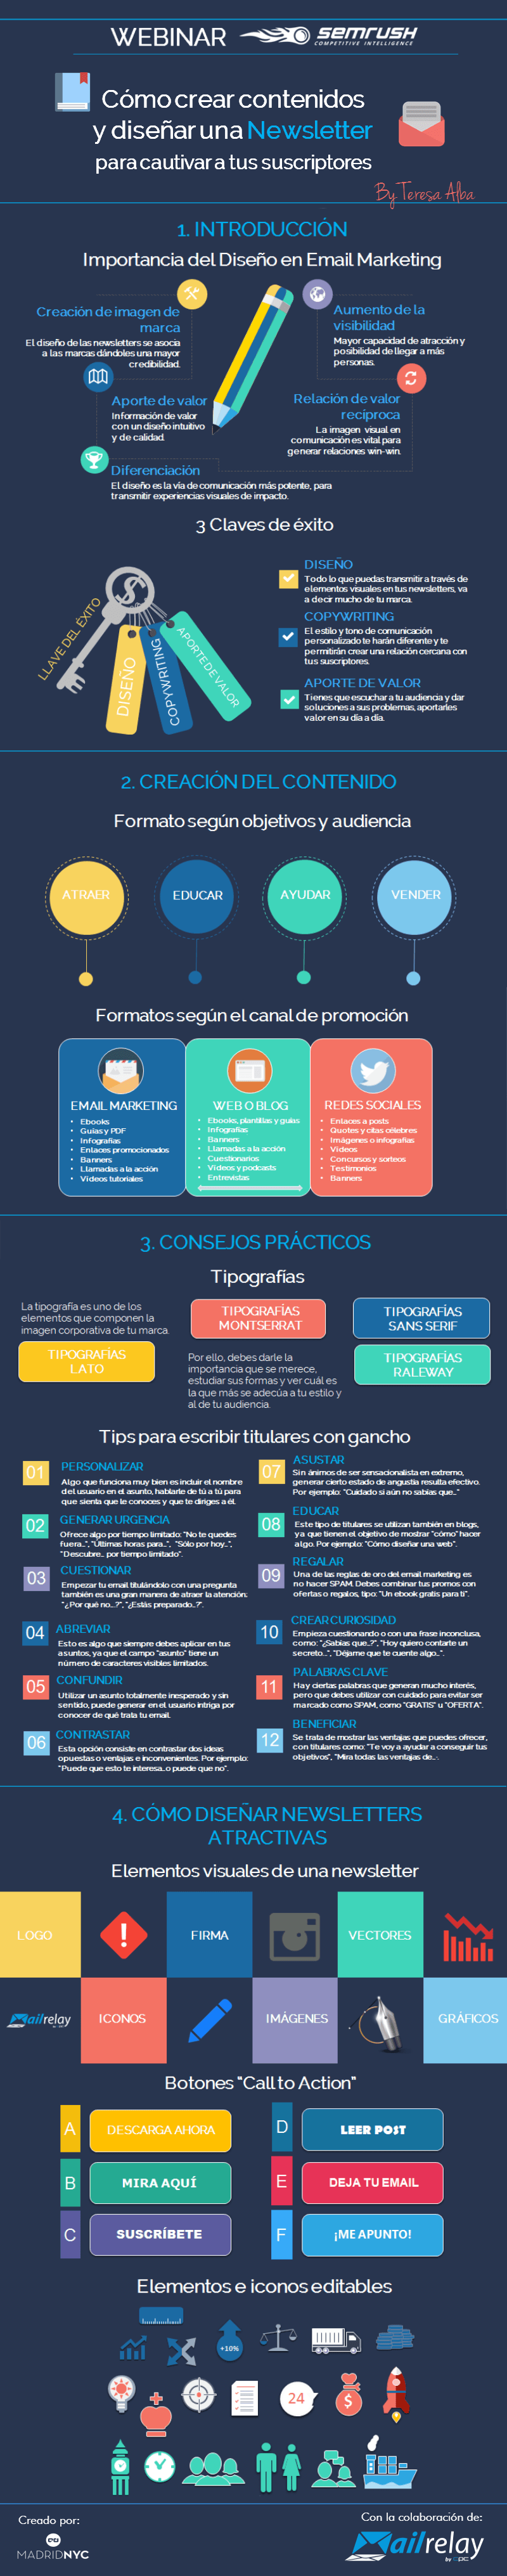 newsletter-infografia